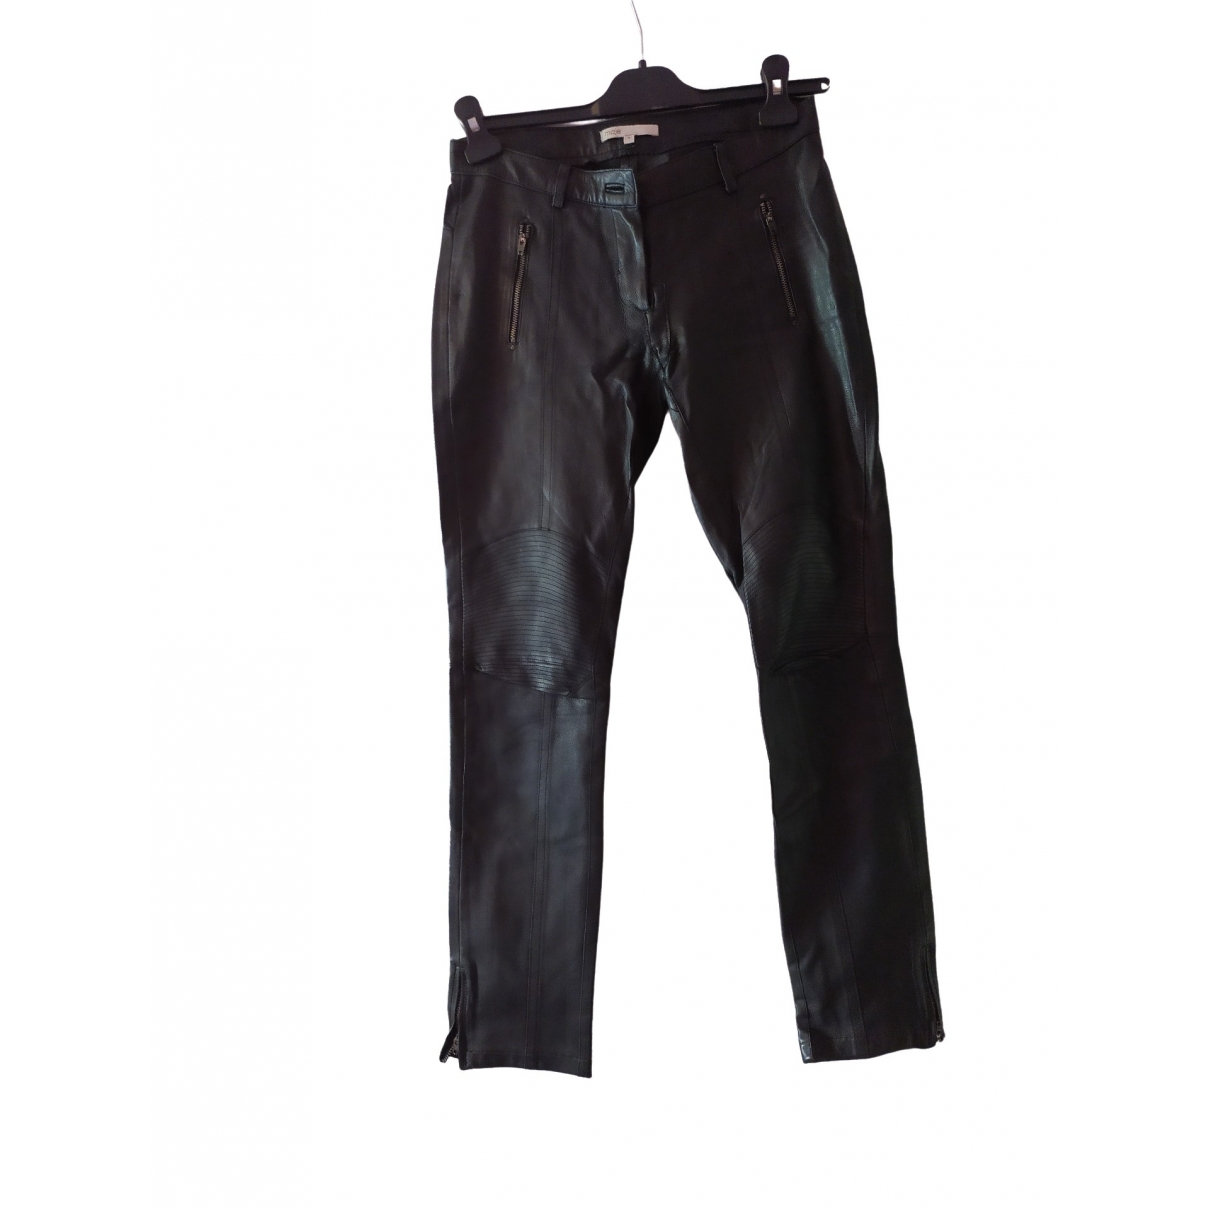 Maje \N Black Leather Trousers for Women 36 FR